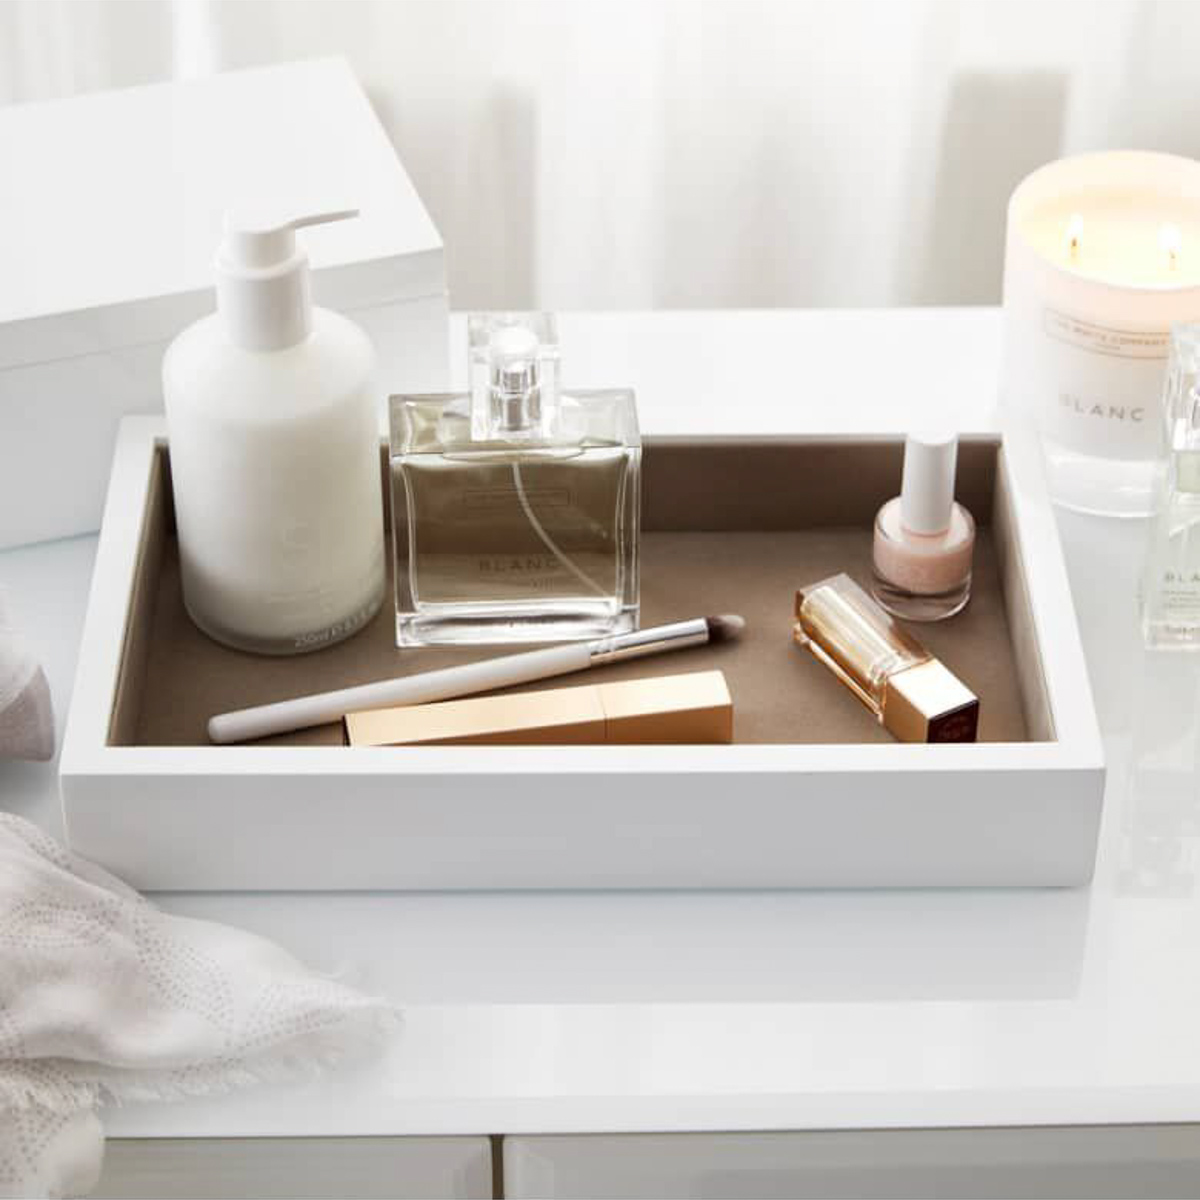 the-white-company-storage-tray-lifestyle-fragrance-man-for-himself-1